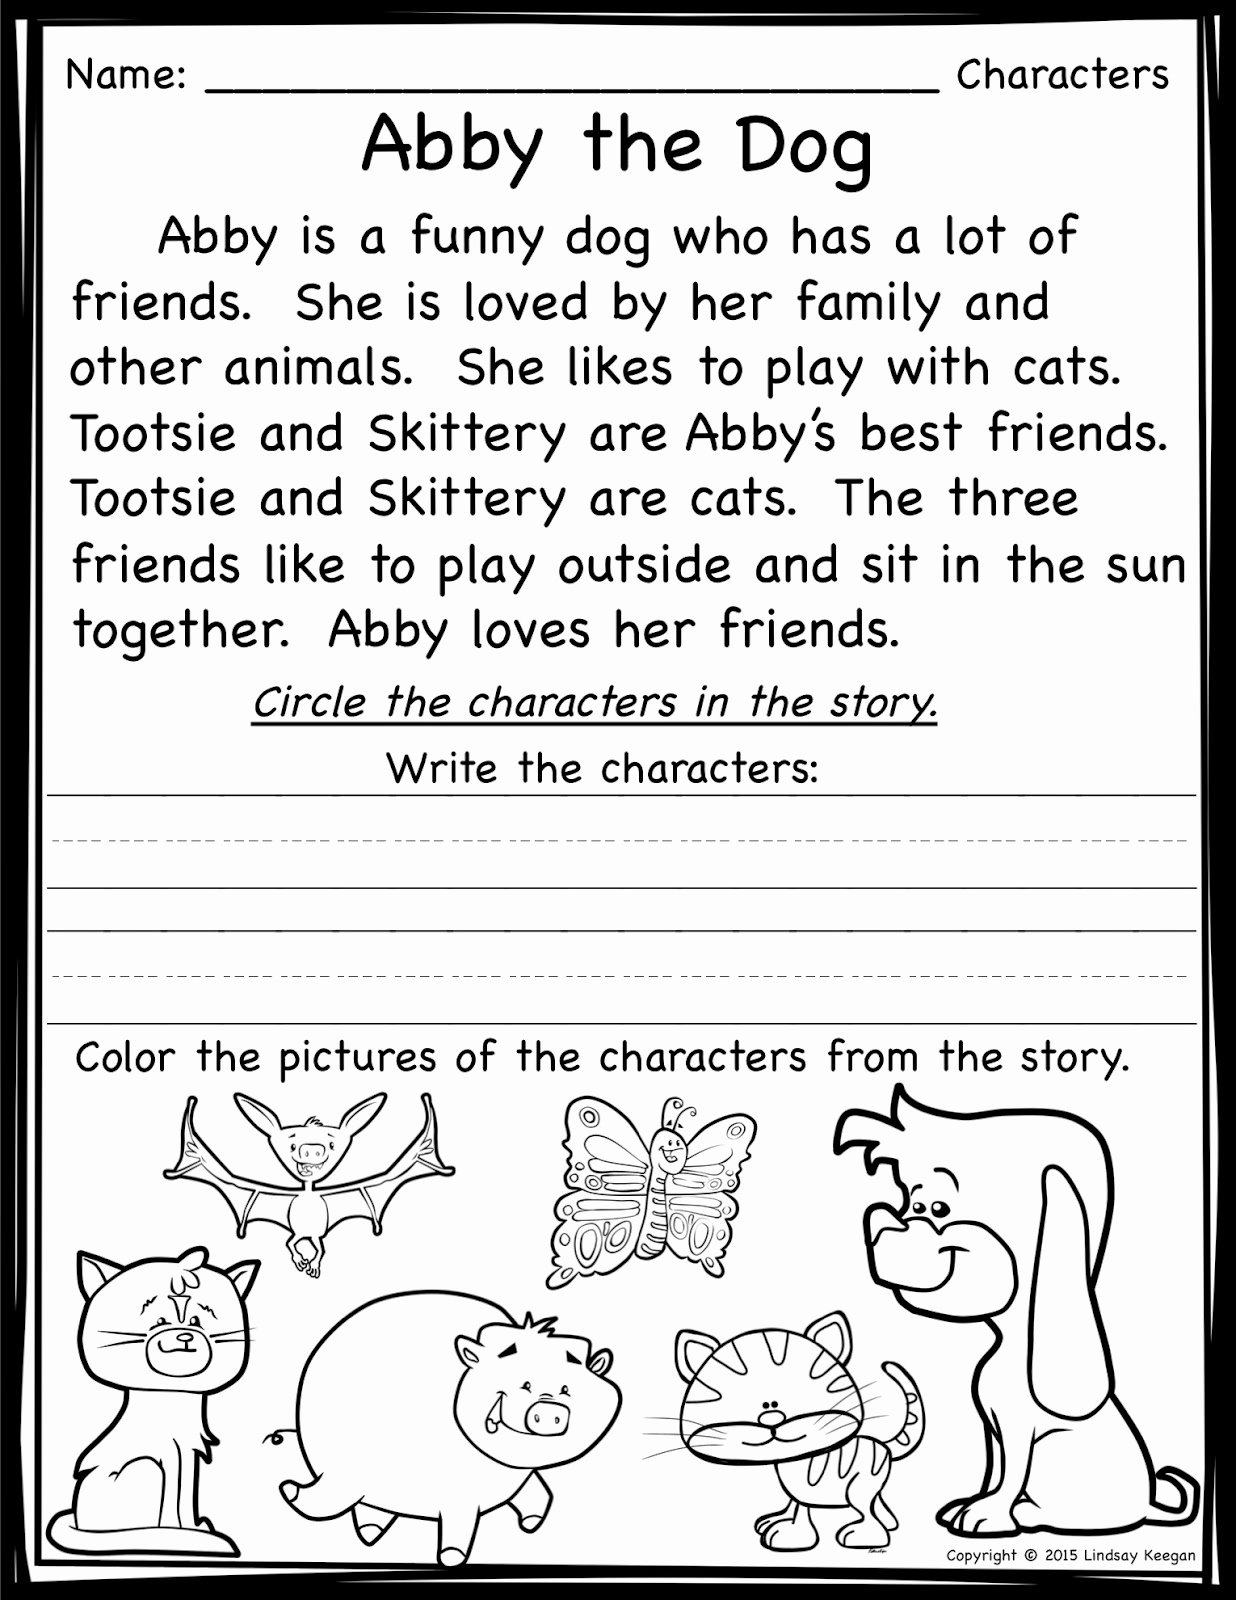 Elements Of Plot Worksheet Unique Keeping It Cool at School Teaching Story Elements and A